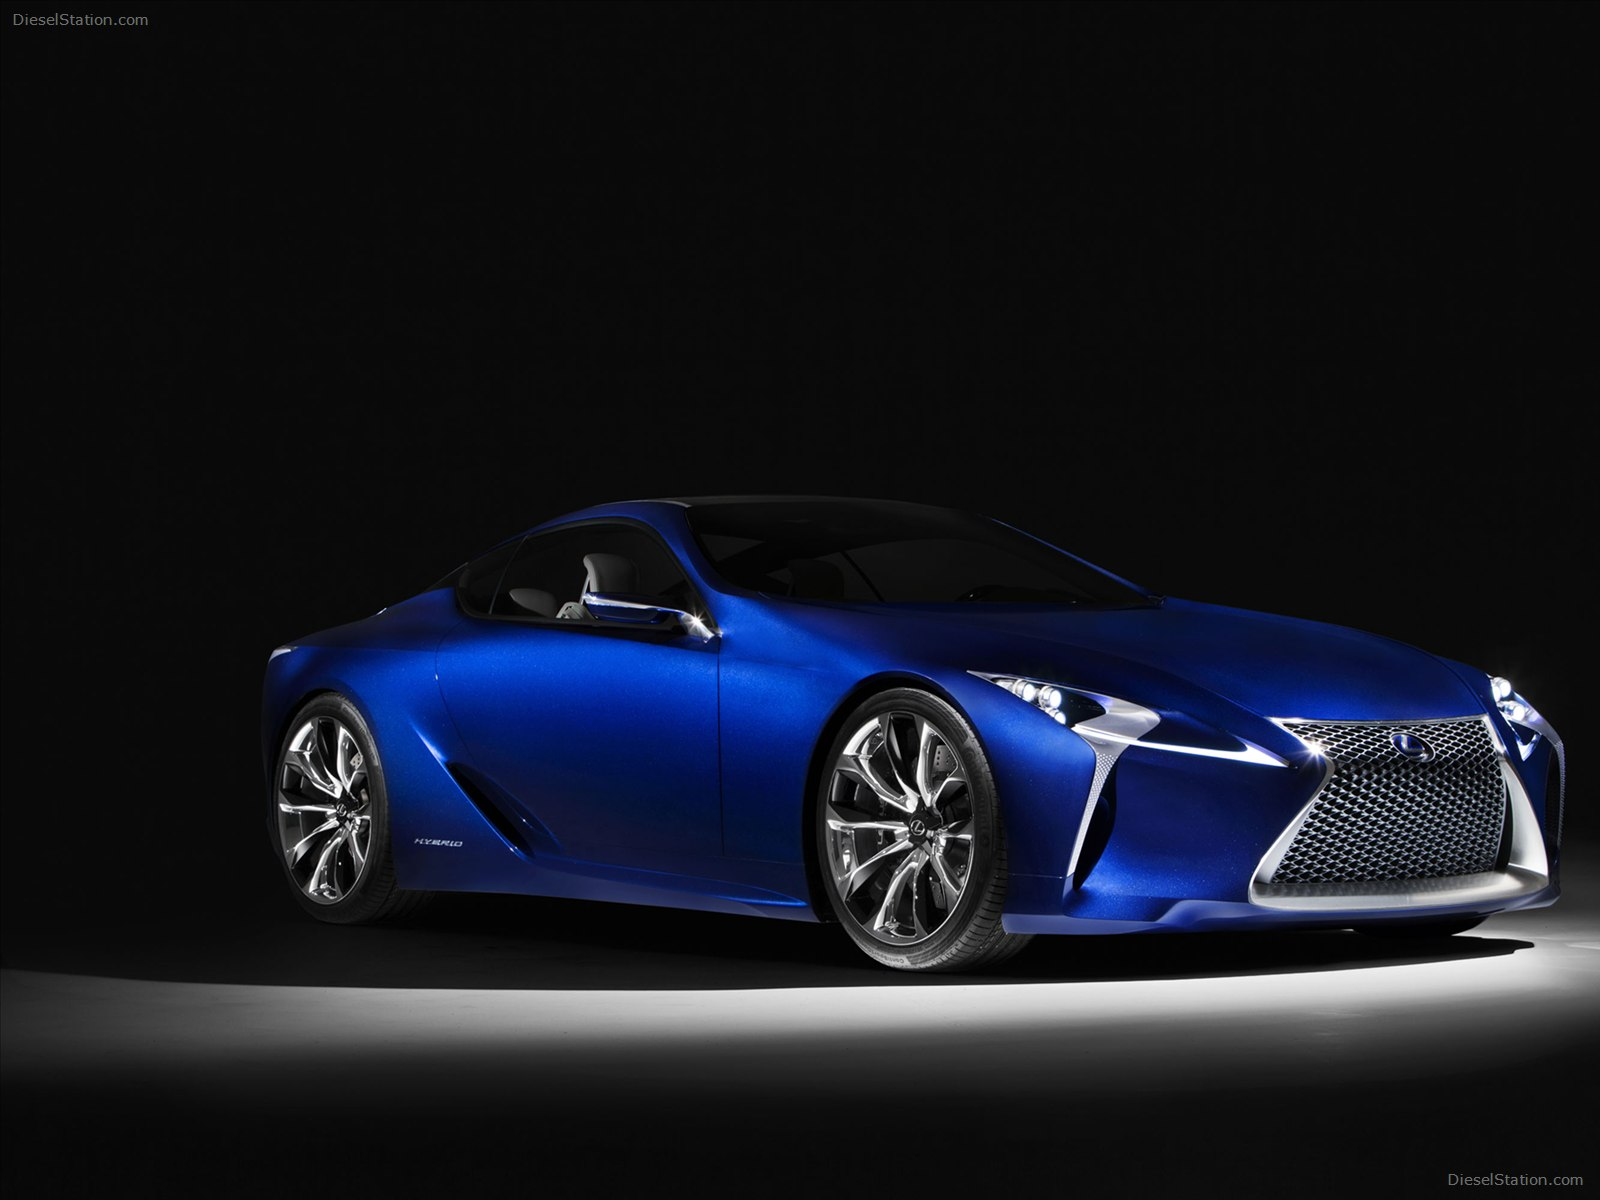 Lexus LF LC Blue Concept 2012 Exotic Car Wallpaper 09 of 24 Diesel 1600x1200